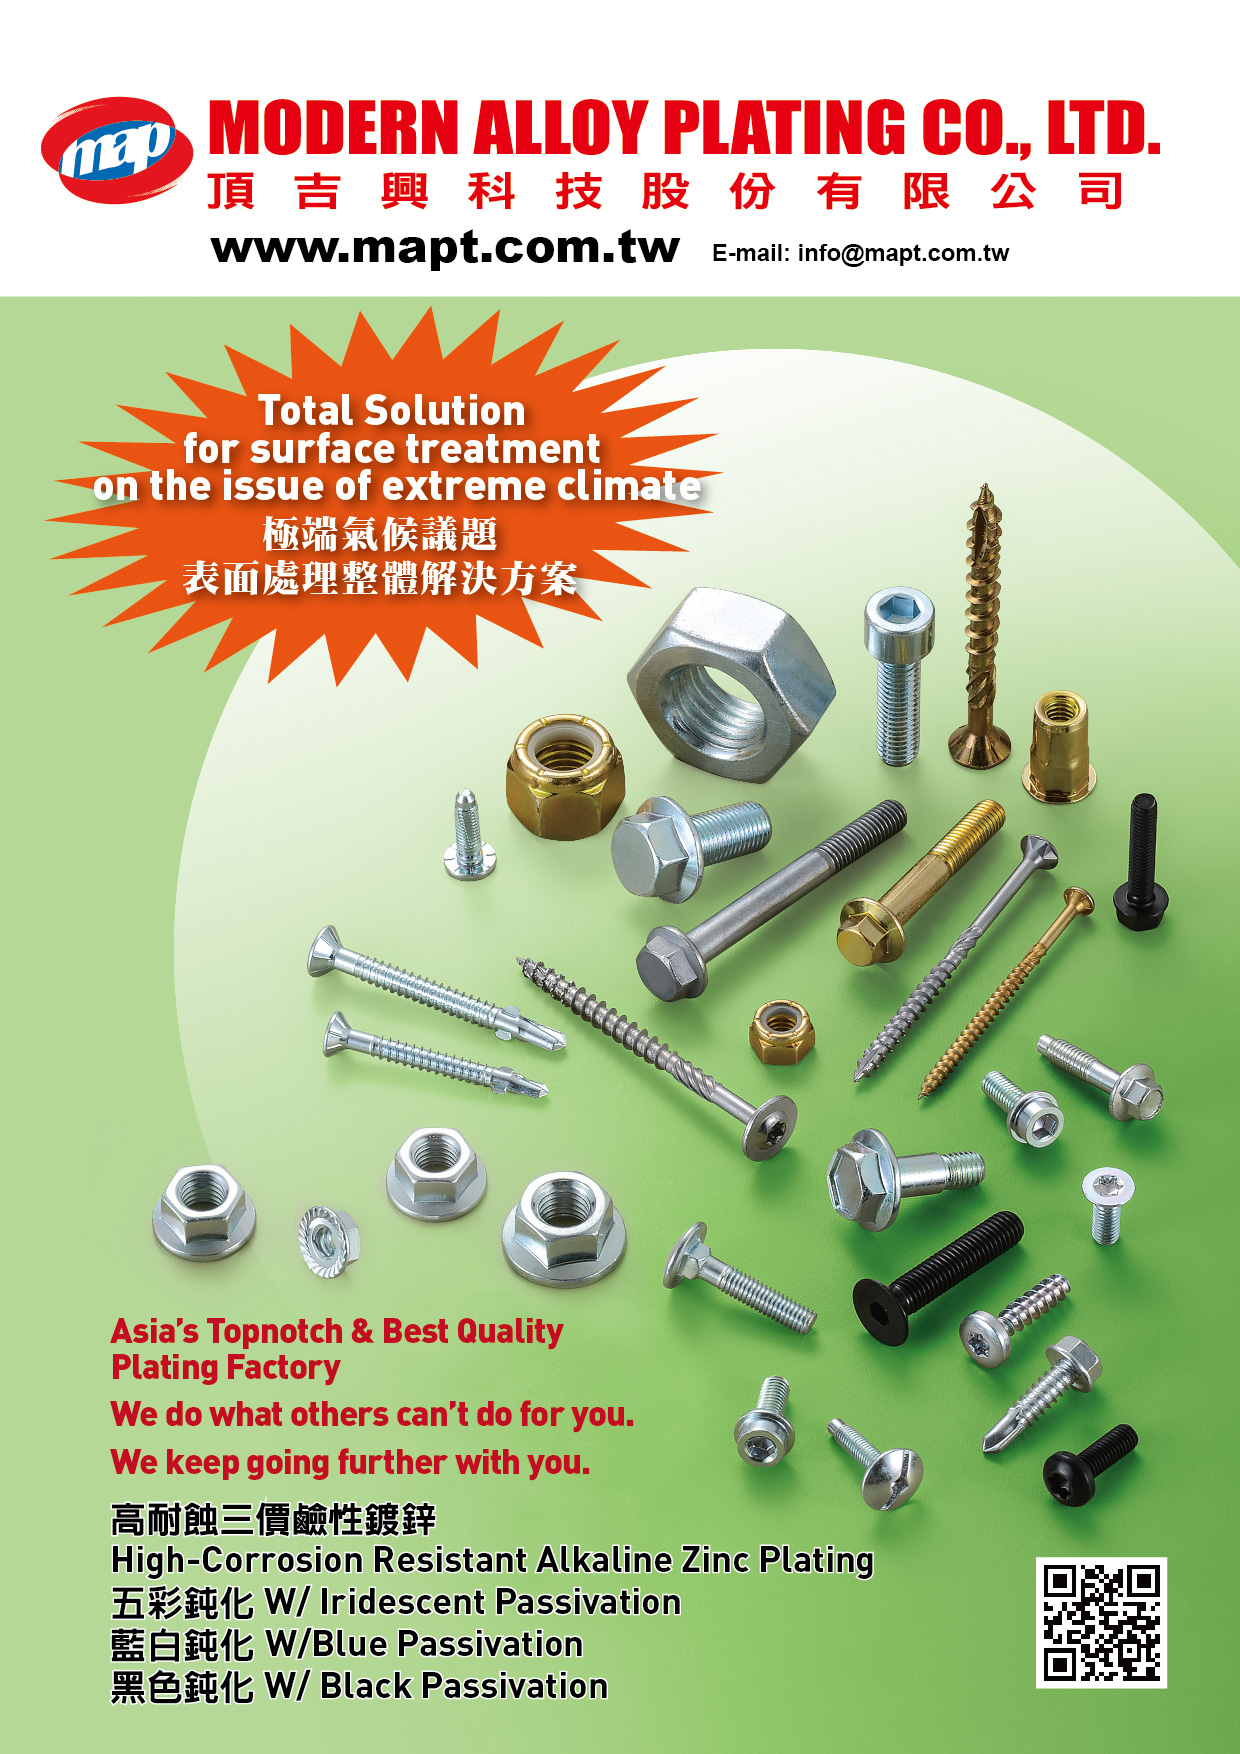 MODERN ALLOY PLATING CO., LTD.  Online Catalogues